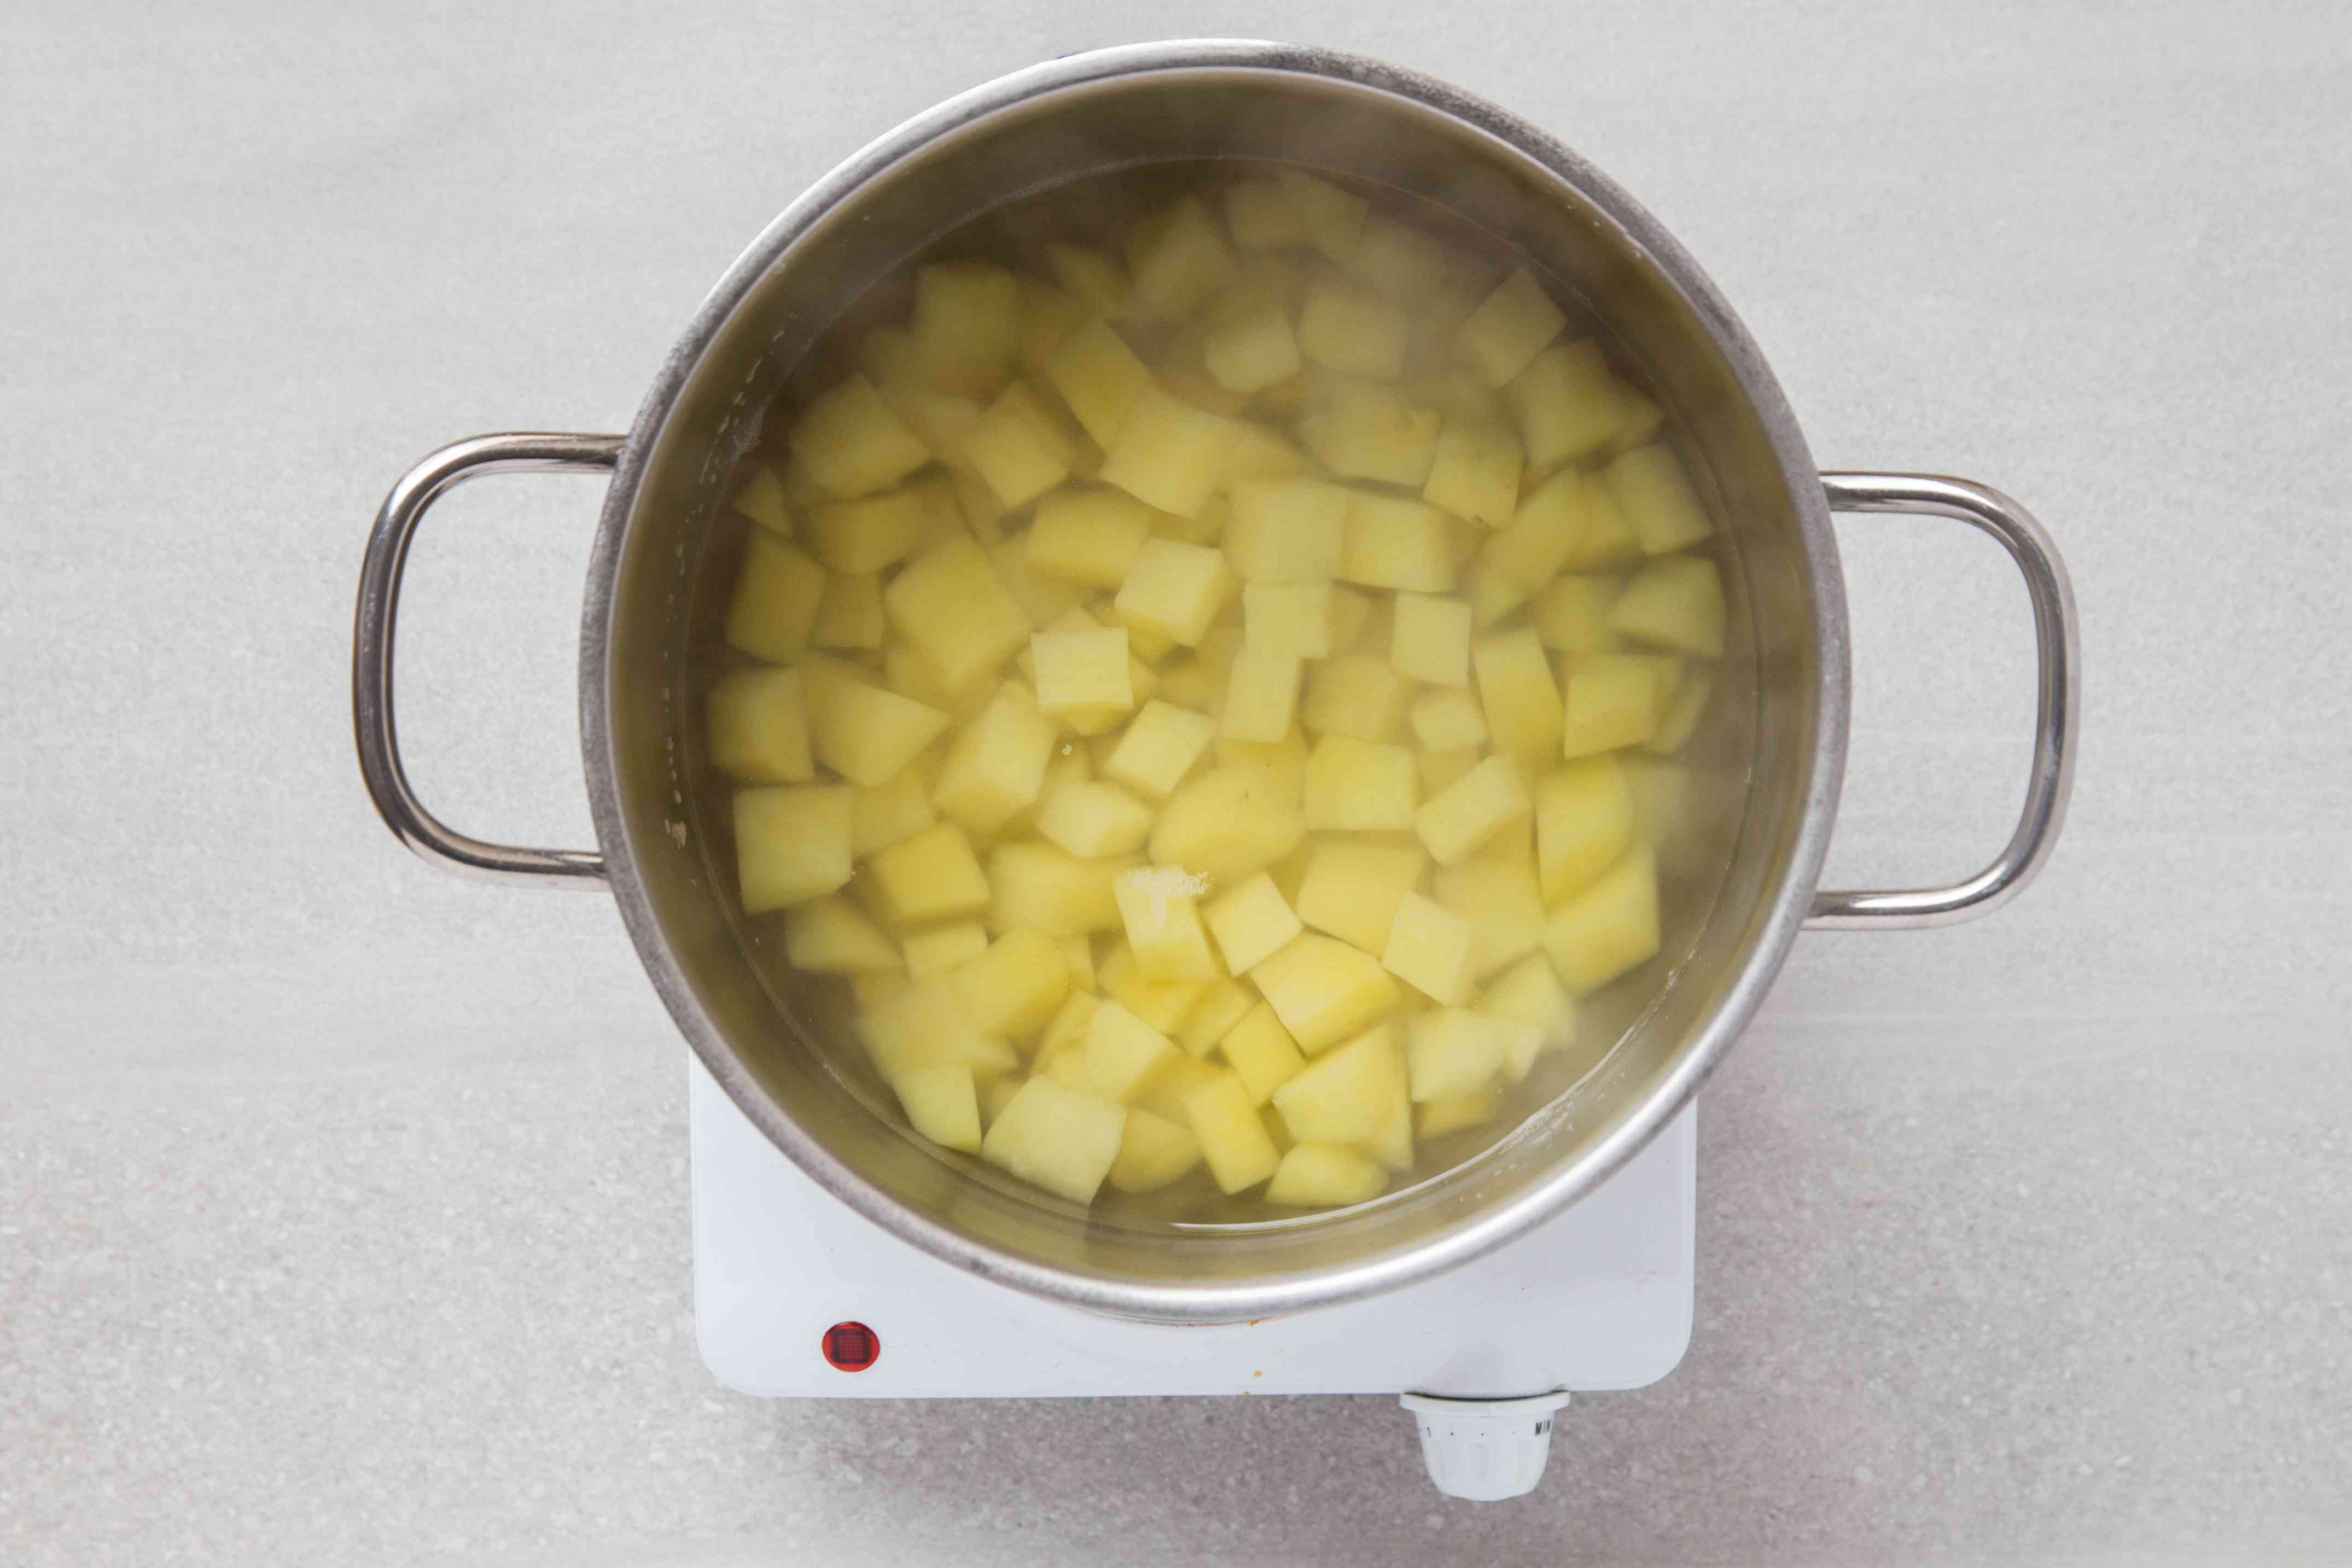 potatoes cooking in a pot